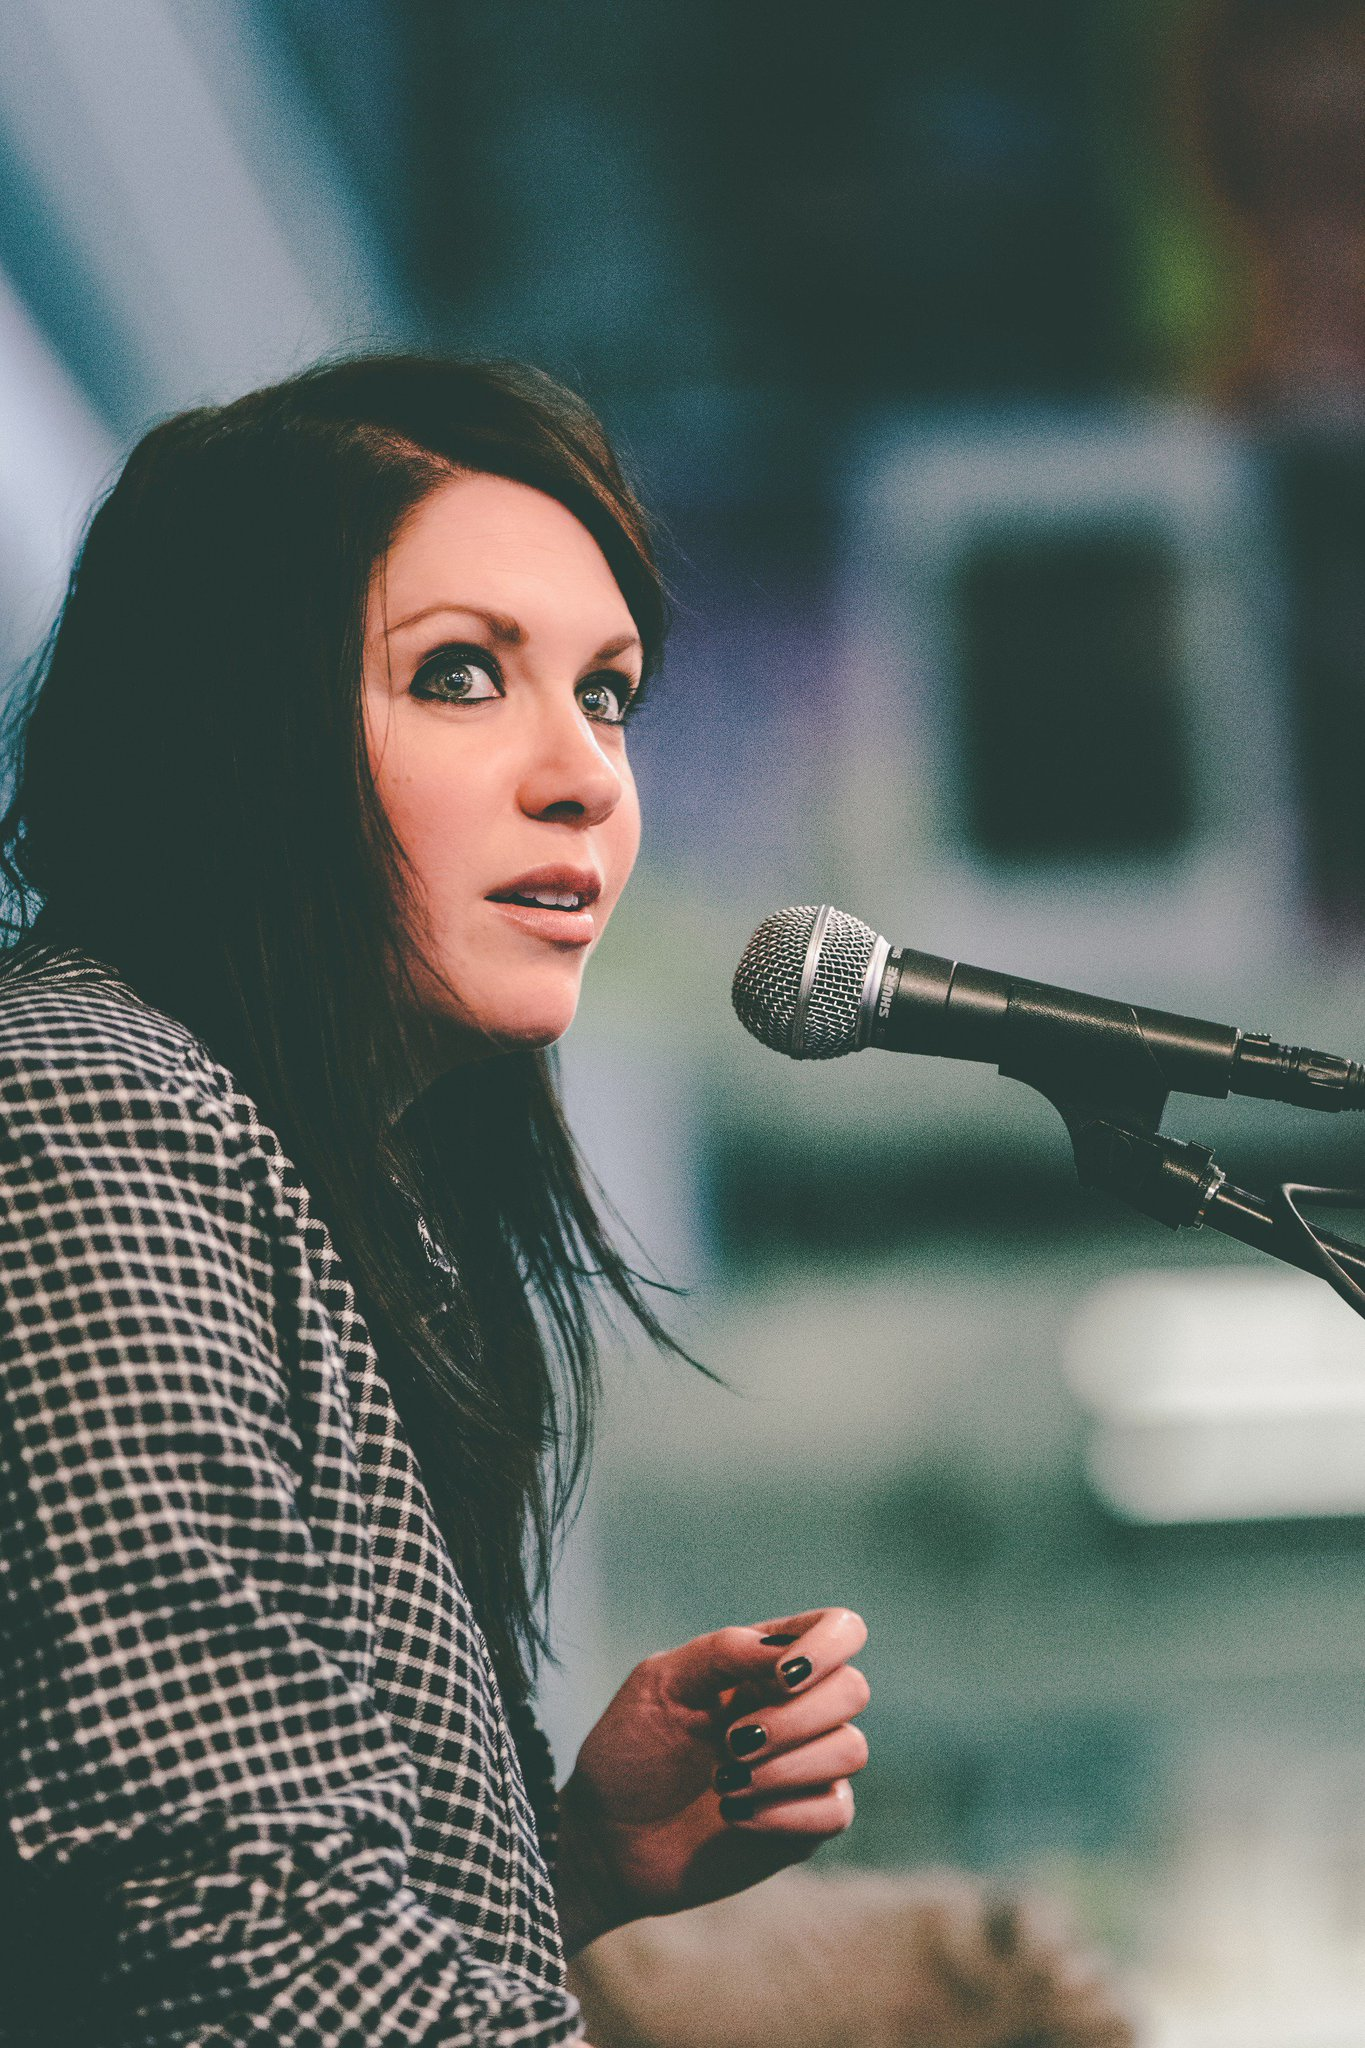 .@kflay performing live in Los Angeles at @amoebamusic. Photos by @AndresWrites. https://t.co/CBps3M3nlc